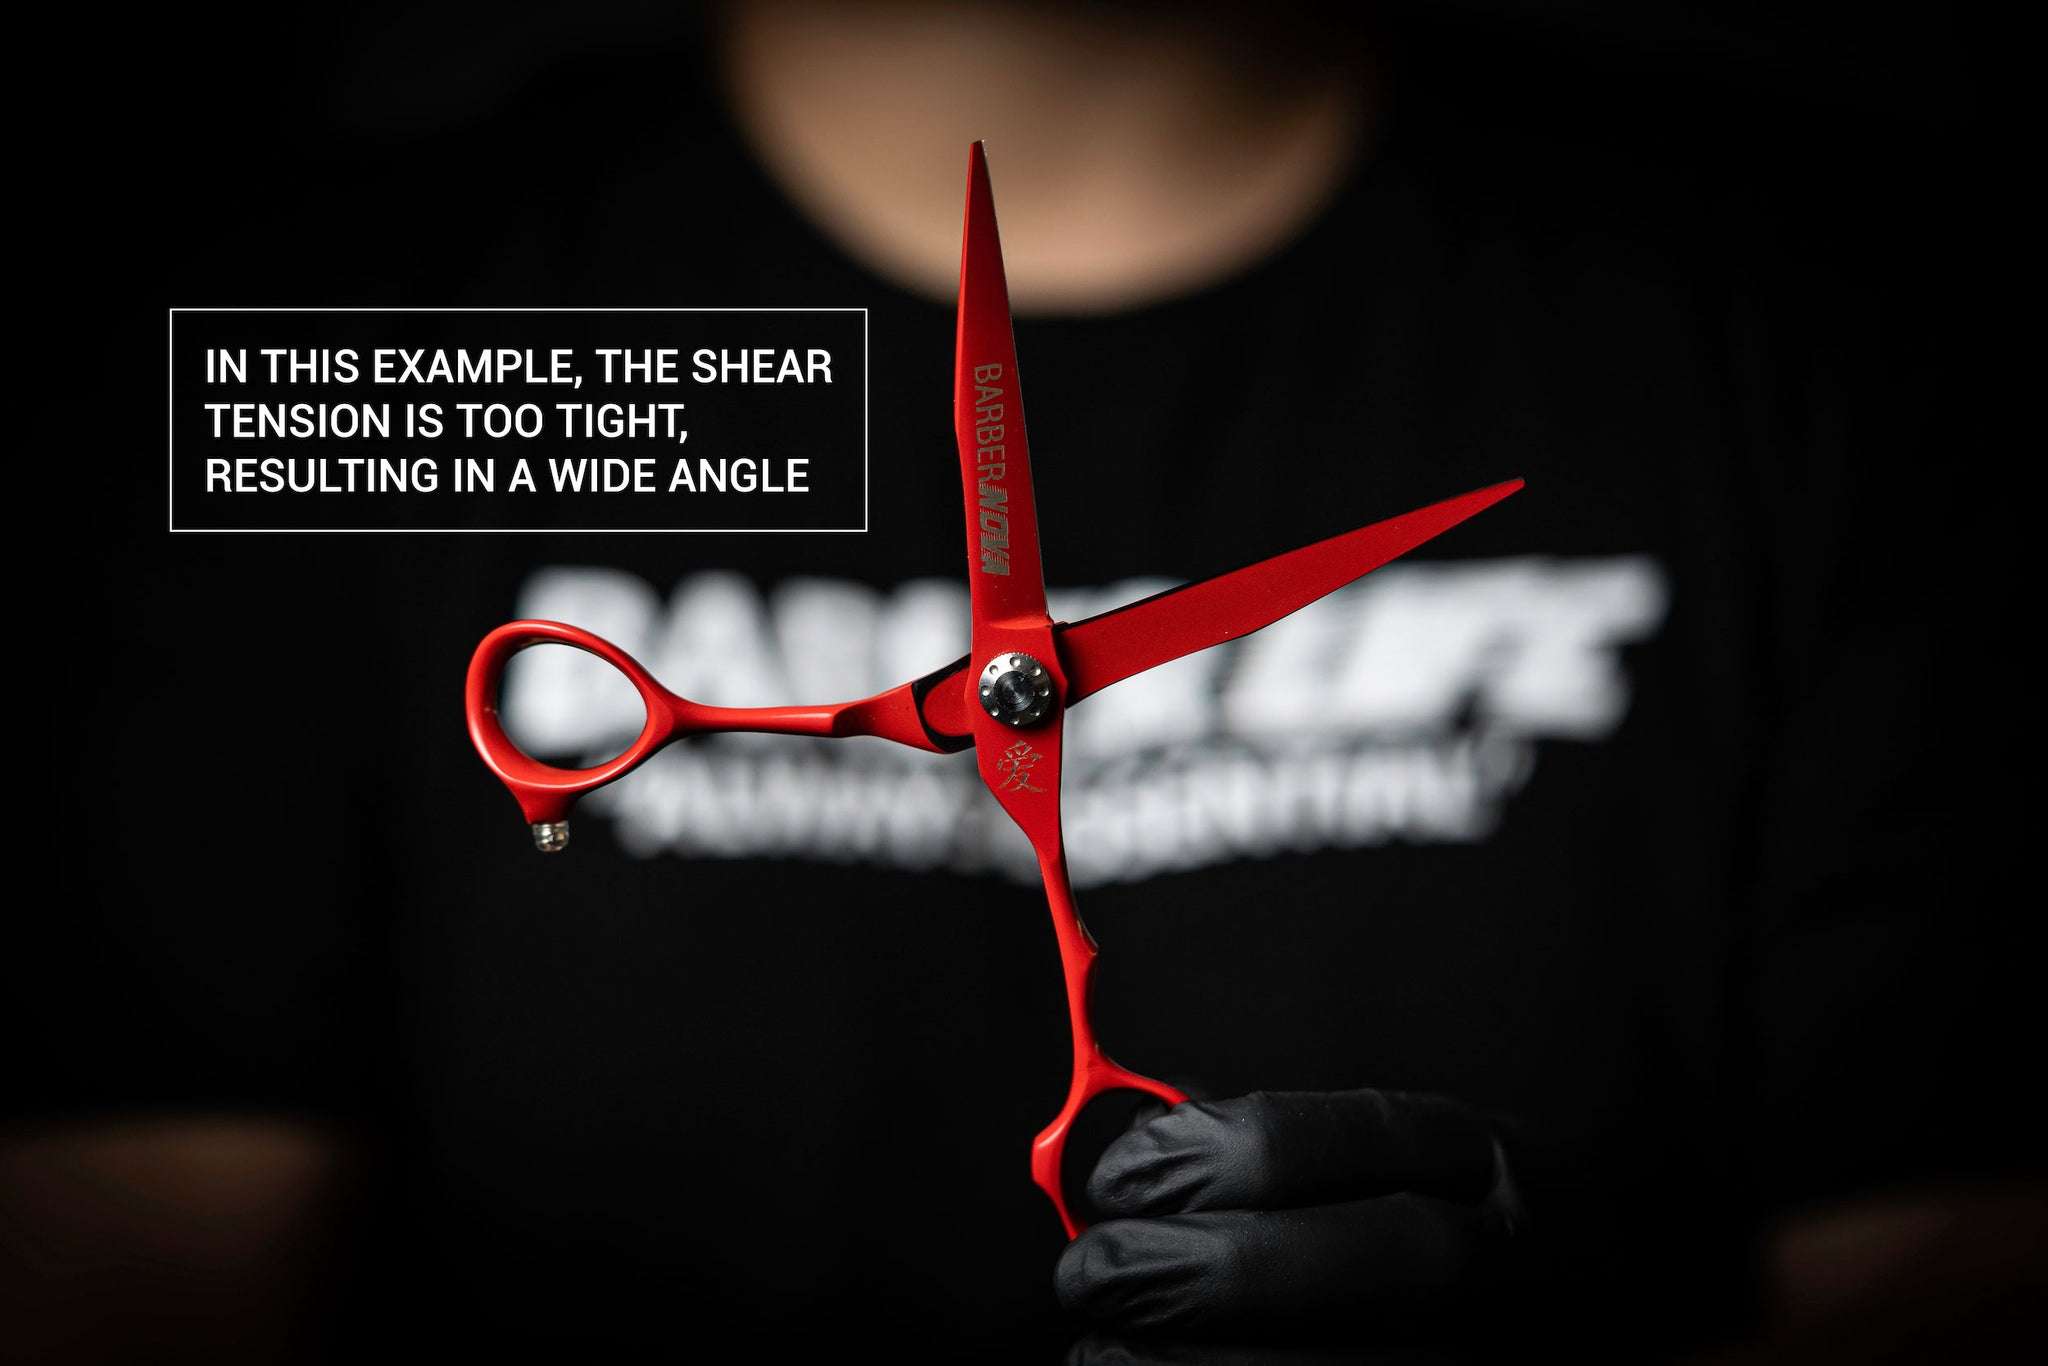 how to get the perfect shear tension, calibrating your shears